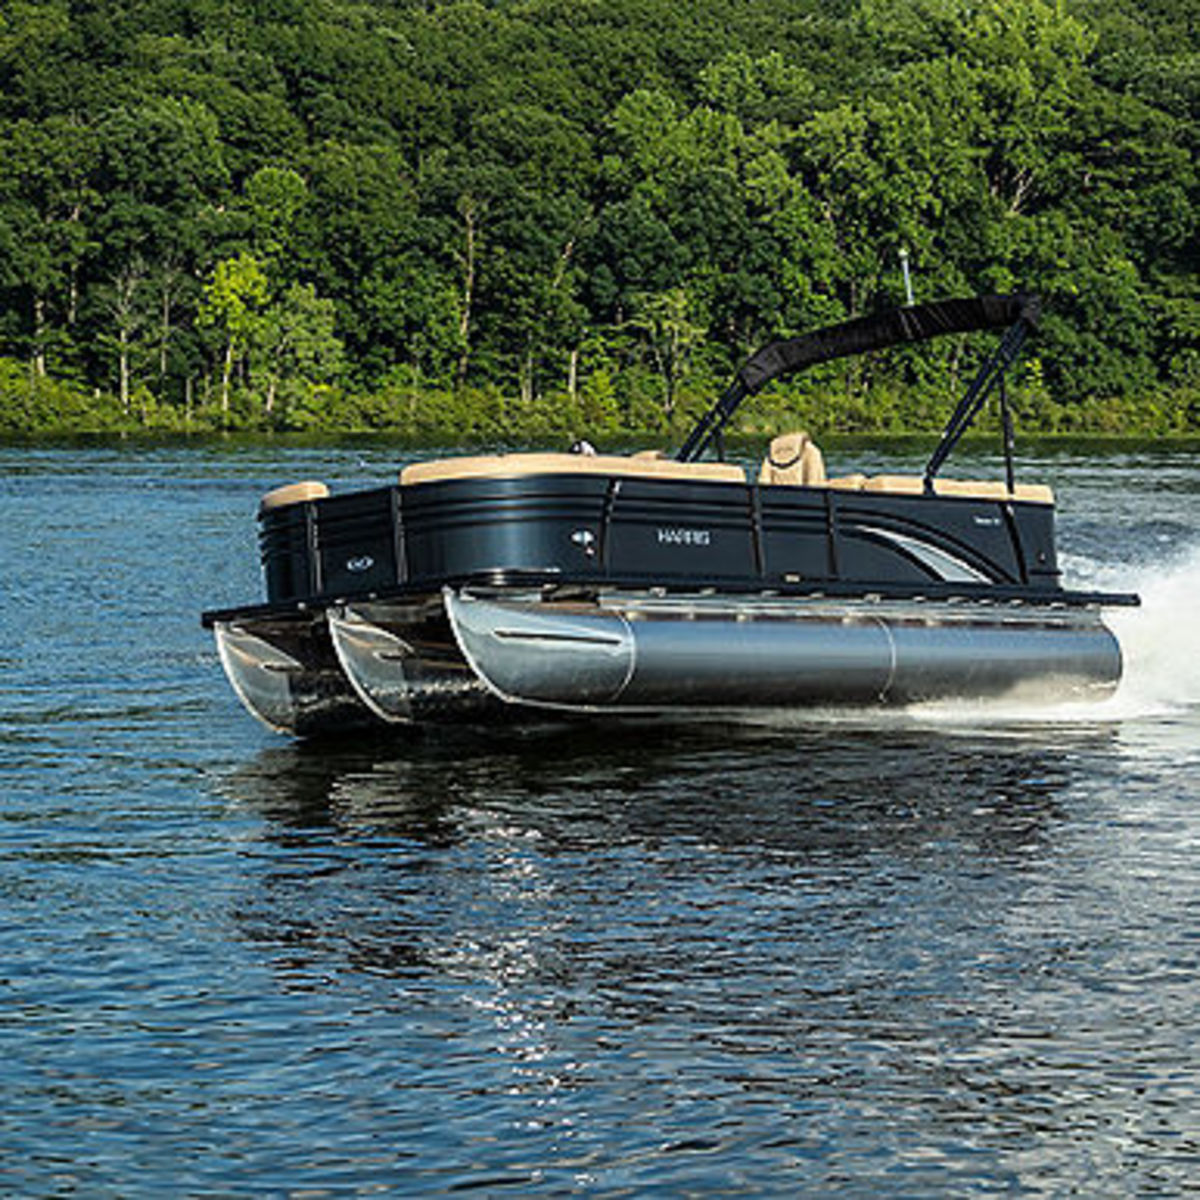 The Sunliner 250 will be the recipient of new layout options and more.